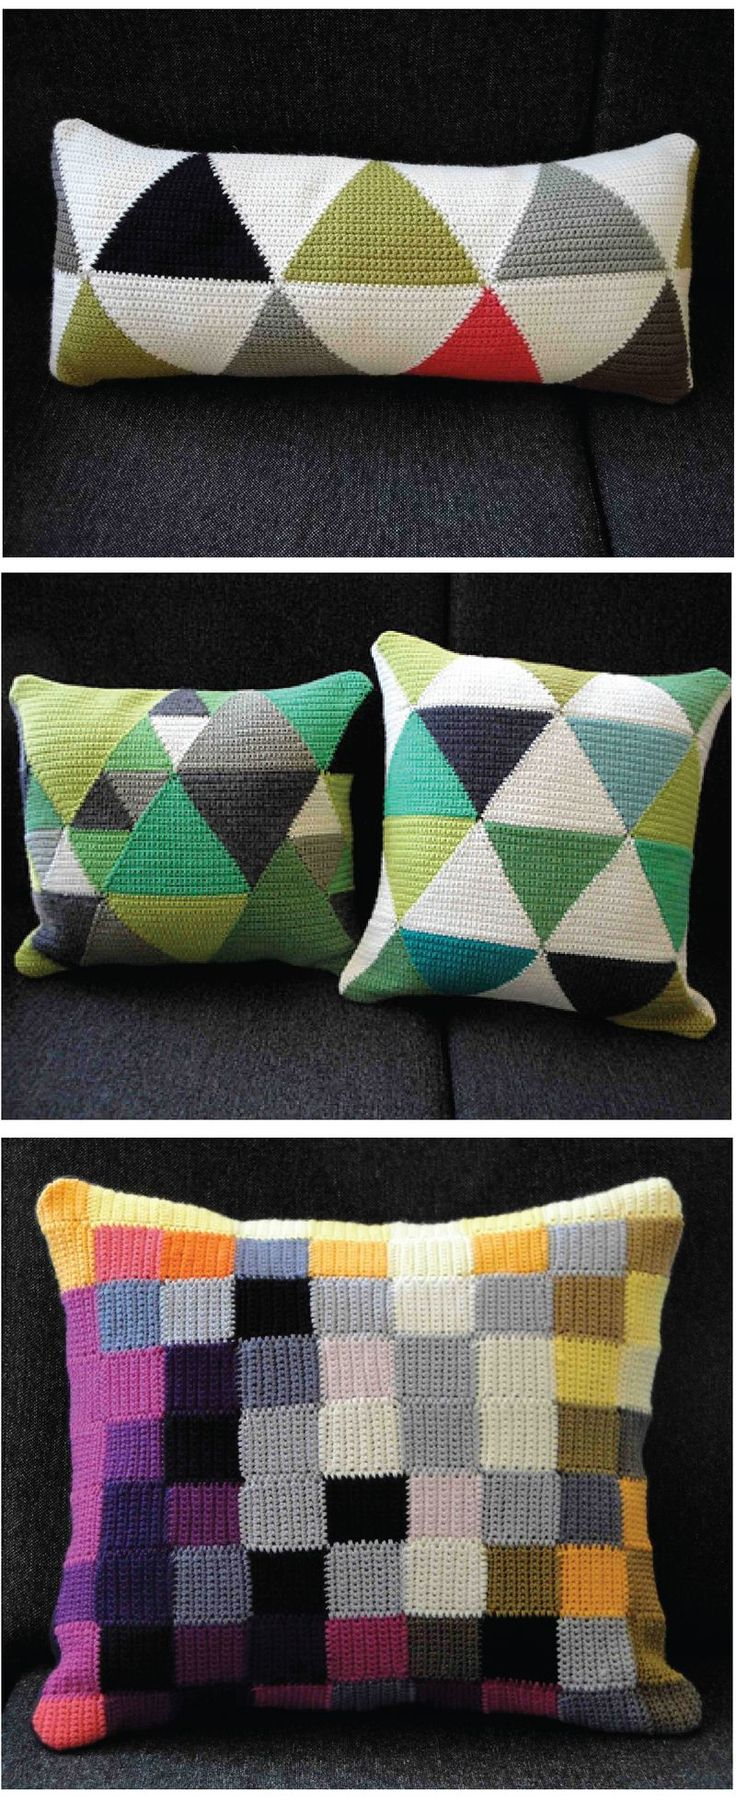 crochet pillows Graphic color blocking. Love when traditional craft is applied to modern design! @Megan Ward Ward Freeman This screams you!